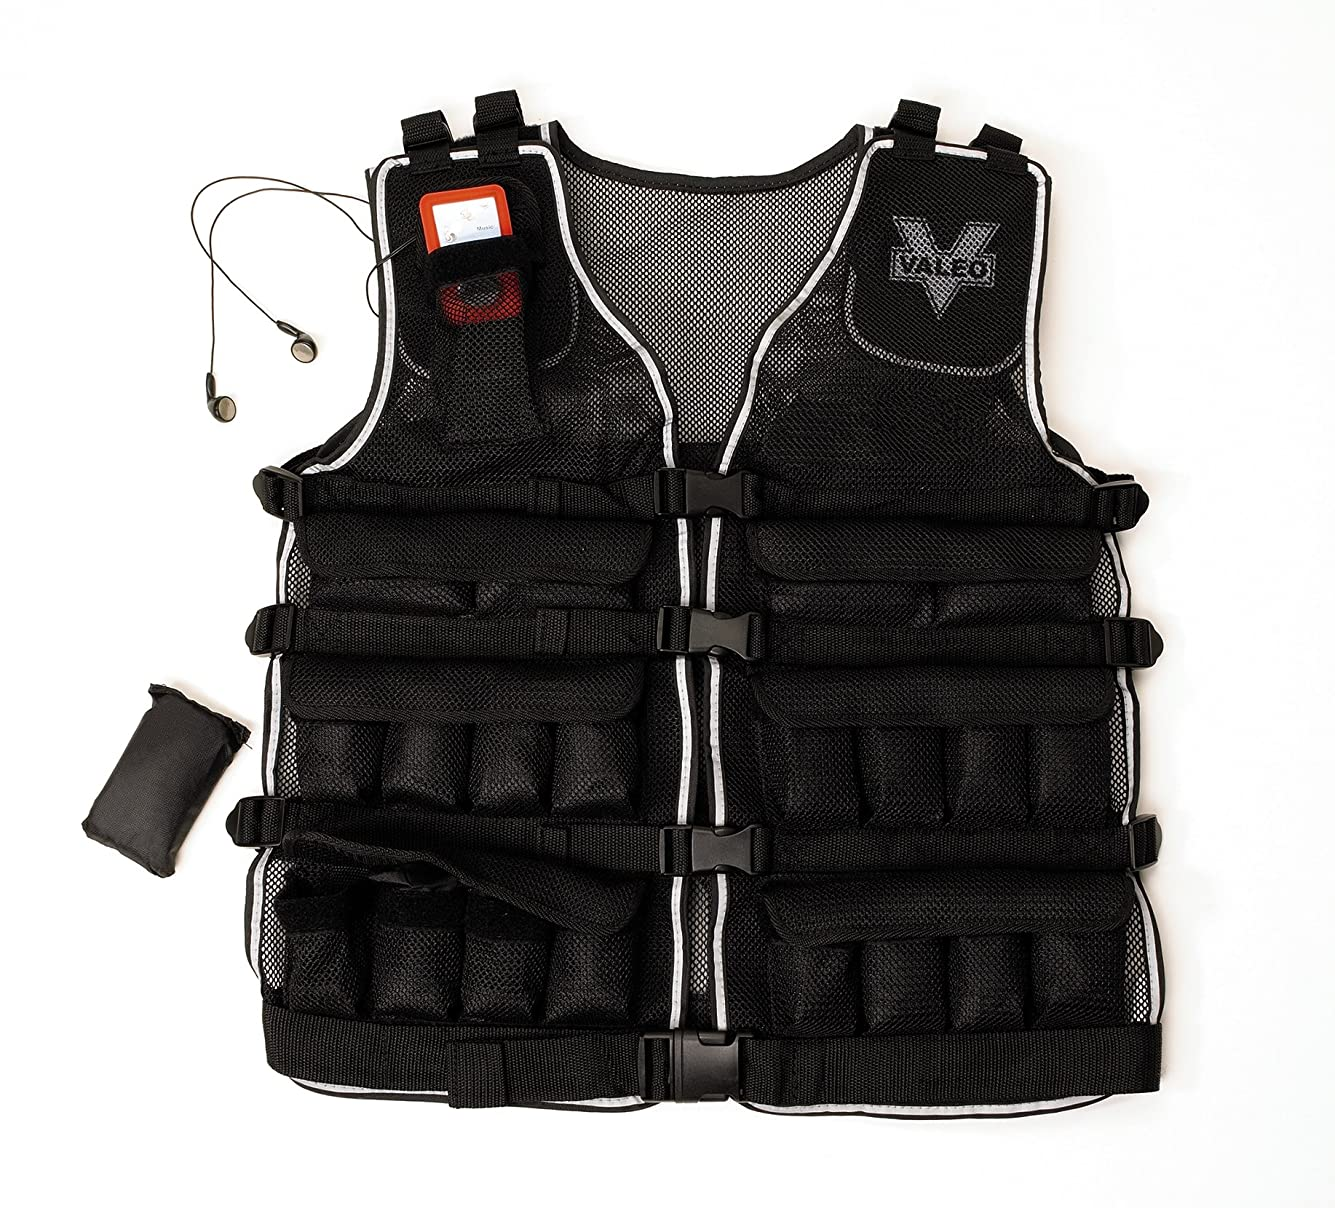 ドライかなり信頼Valeo 20lb Weighted Vest WV20 %